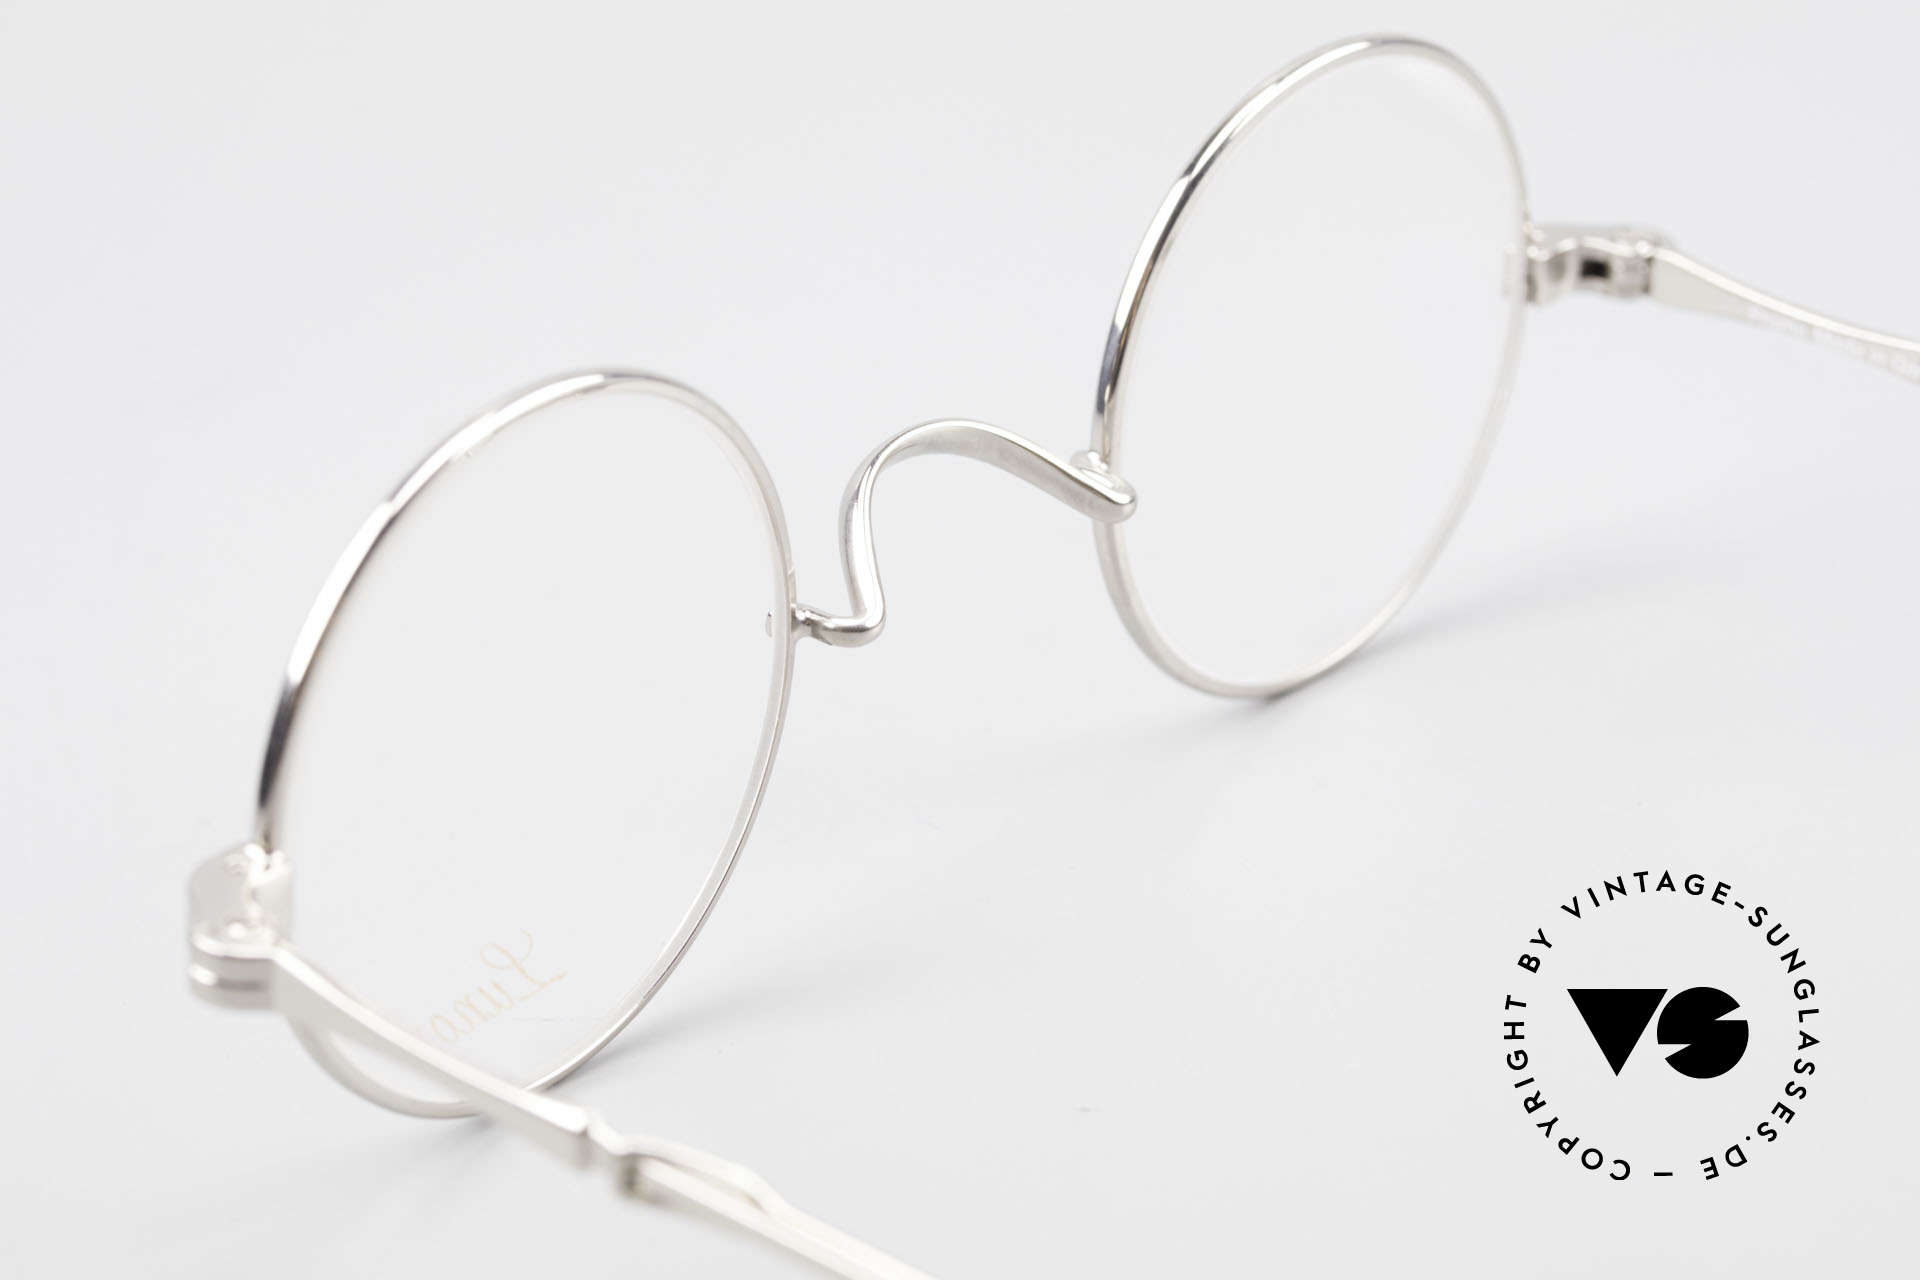 Lunor I 12 Telescopic Round Glasses Slide Temples, Size: extra small, Made for Men and Women